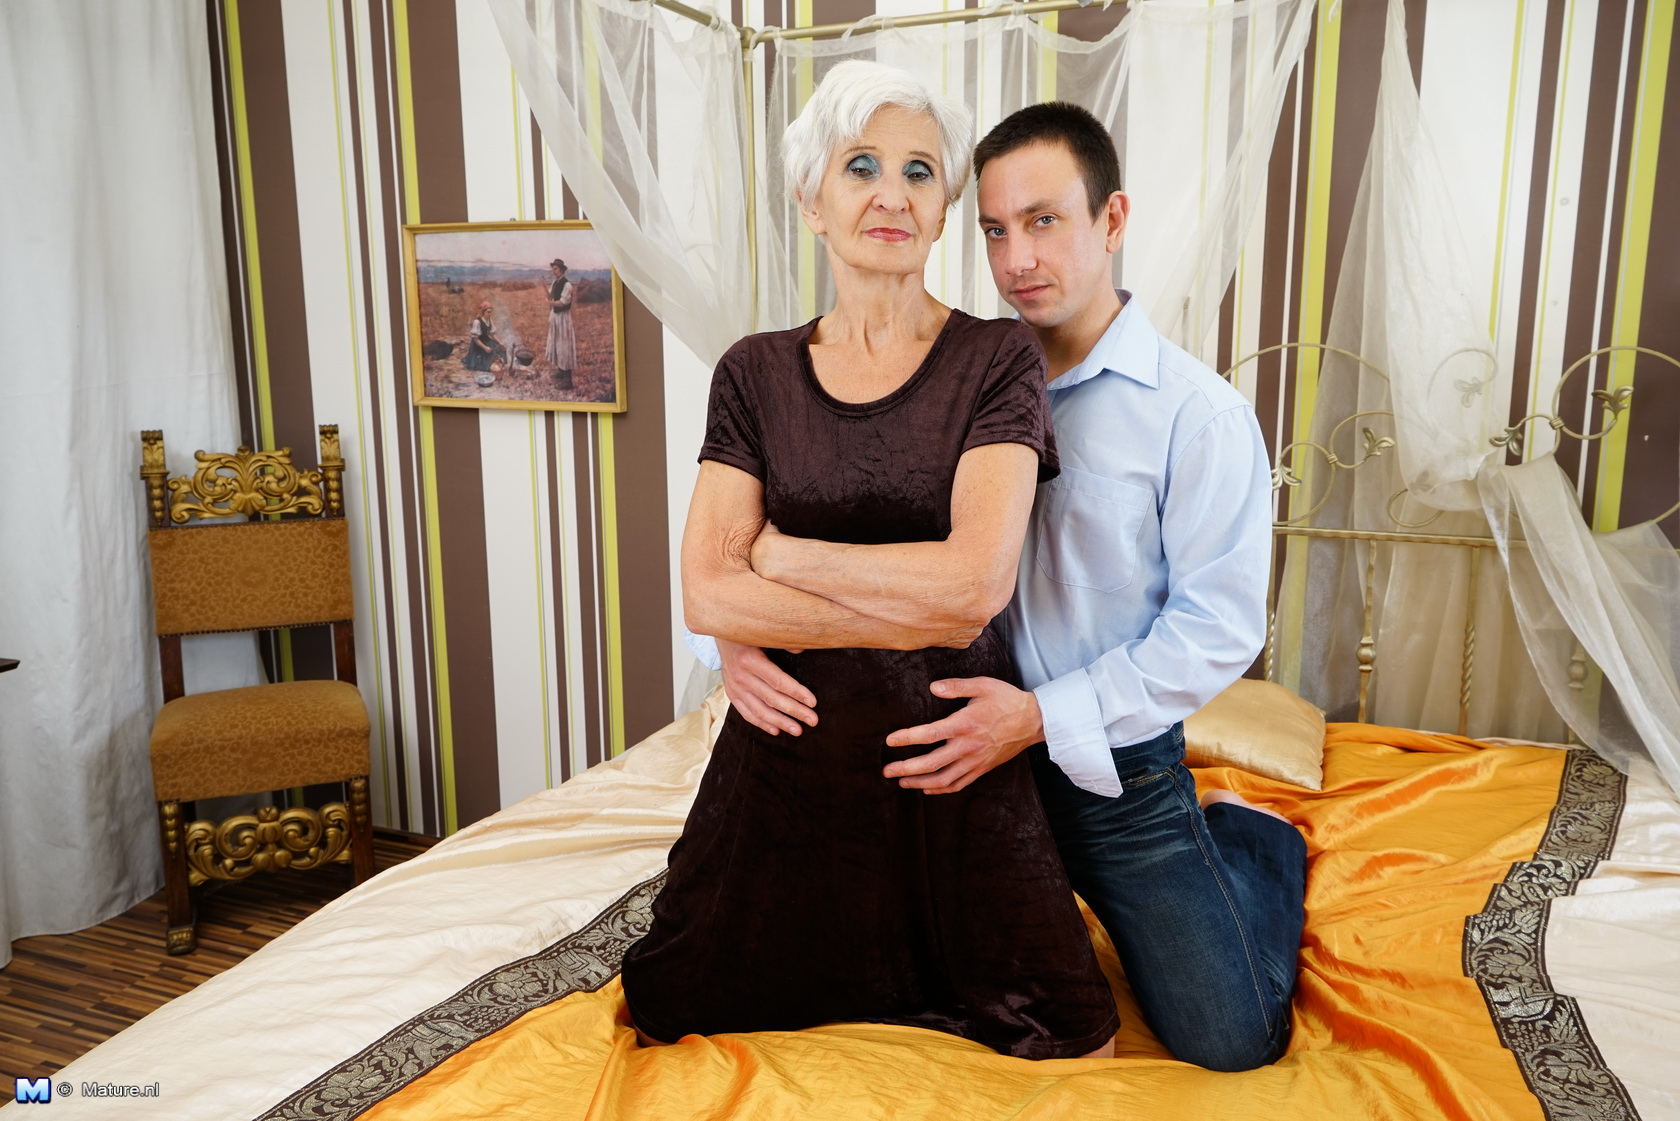 This mature woman enjoys having fun with her plaything man